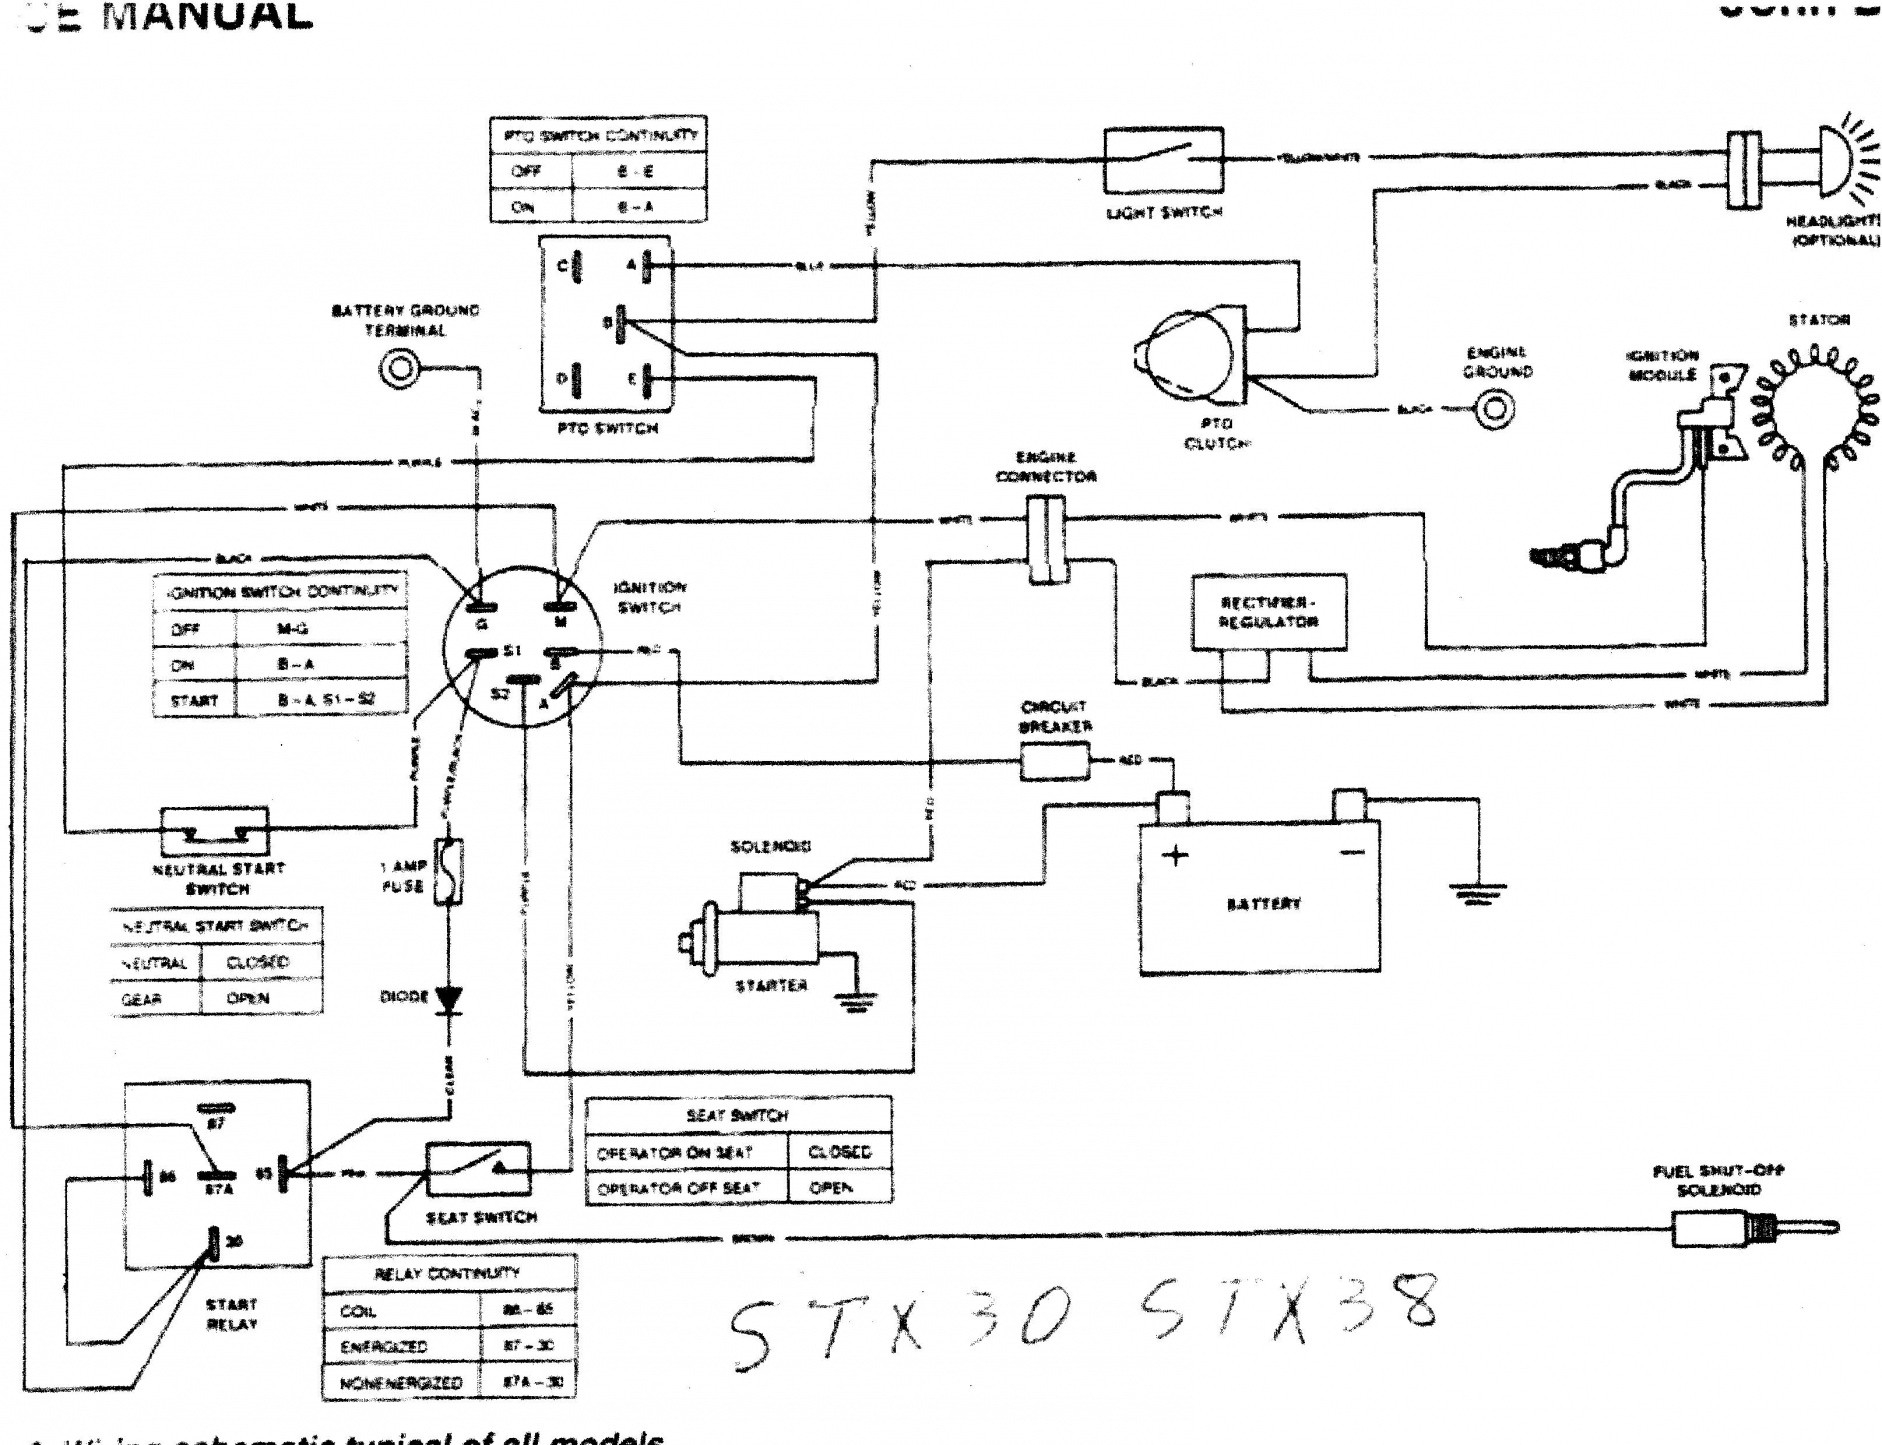 "Jd 4320 Wiring Diagram | Wiring Diagram John Deere Wiring Diagram on john deere voltage regulator wiring, john deere tractor wiring, john deere fuse box diagram, john deere 42"" deck diagrams, john deere repair diagrams, john deere 3020 diagram, john deere starters diagrams, john deere 310e backhoe problems, john deere power beyond diagram, john deere fuel gauge wiring, john deere gt235 diagram, john deere cylinder head, john deere 345 diagram, john deere electrical diagrams, john deere riding mower diagram, john deere 212 diagram, john deere chassis, john deere fuel system diagram, john deere sabre mower belt diagram, john deere rear end diagrams,"